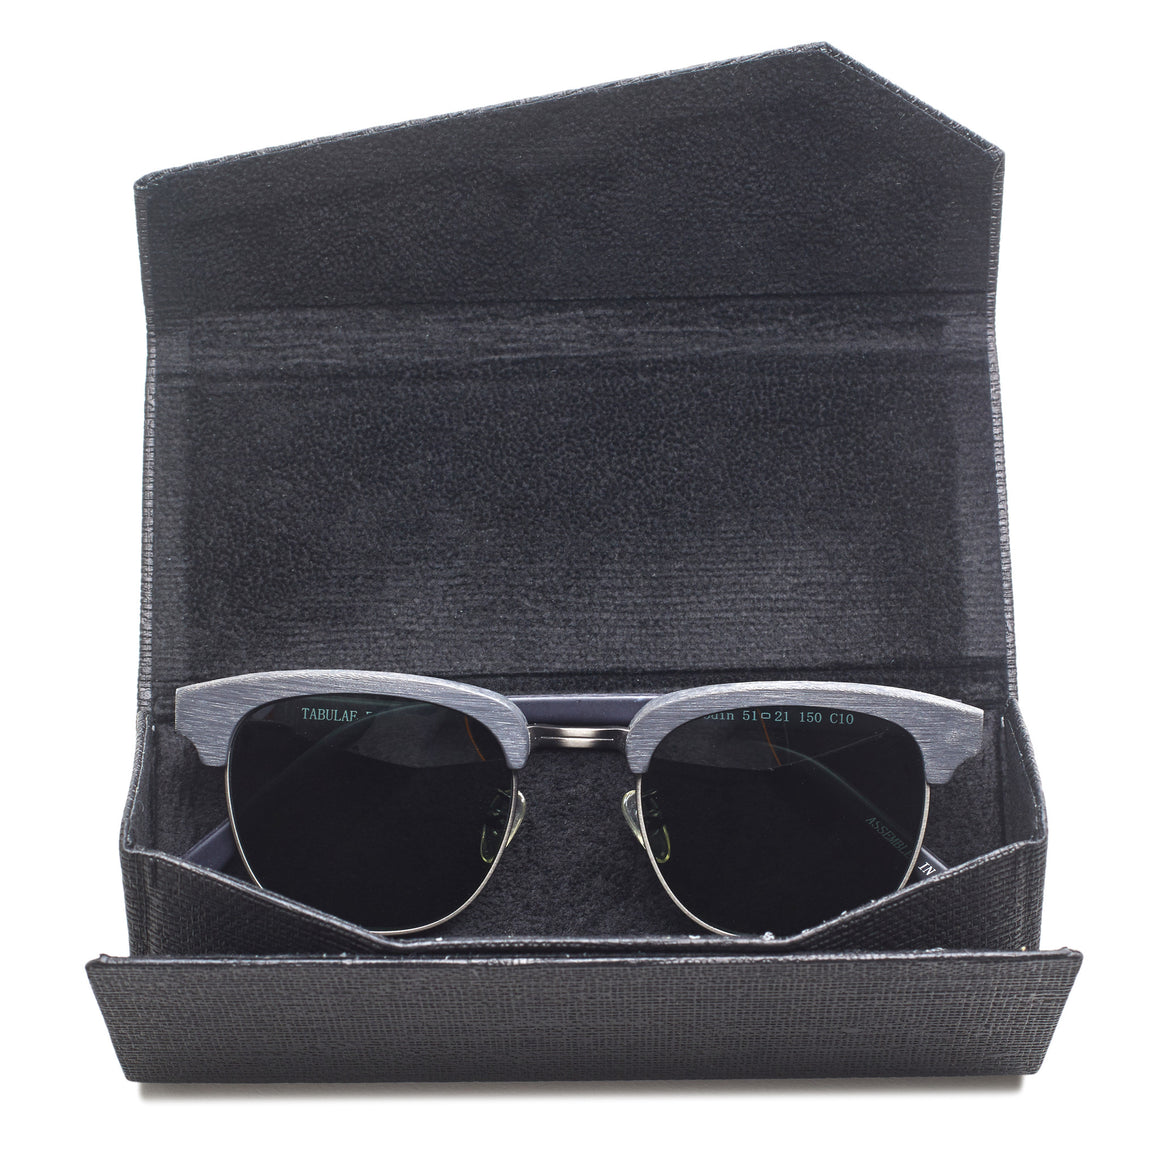 black folding sunglasses case open